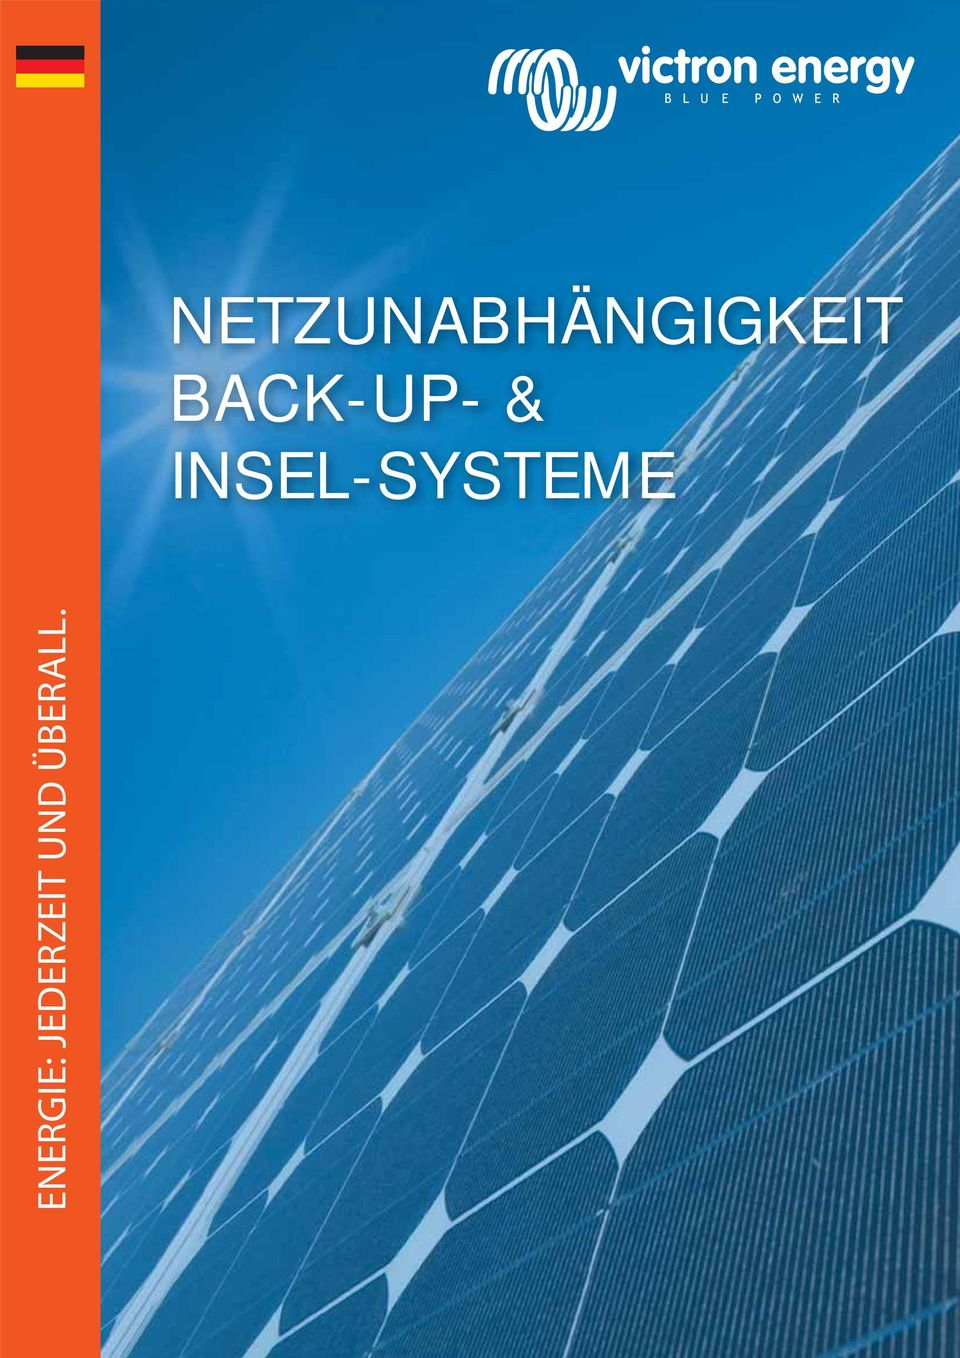 INSEL-SYSTEME